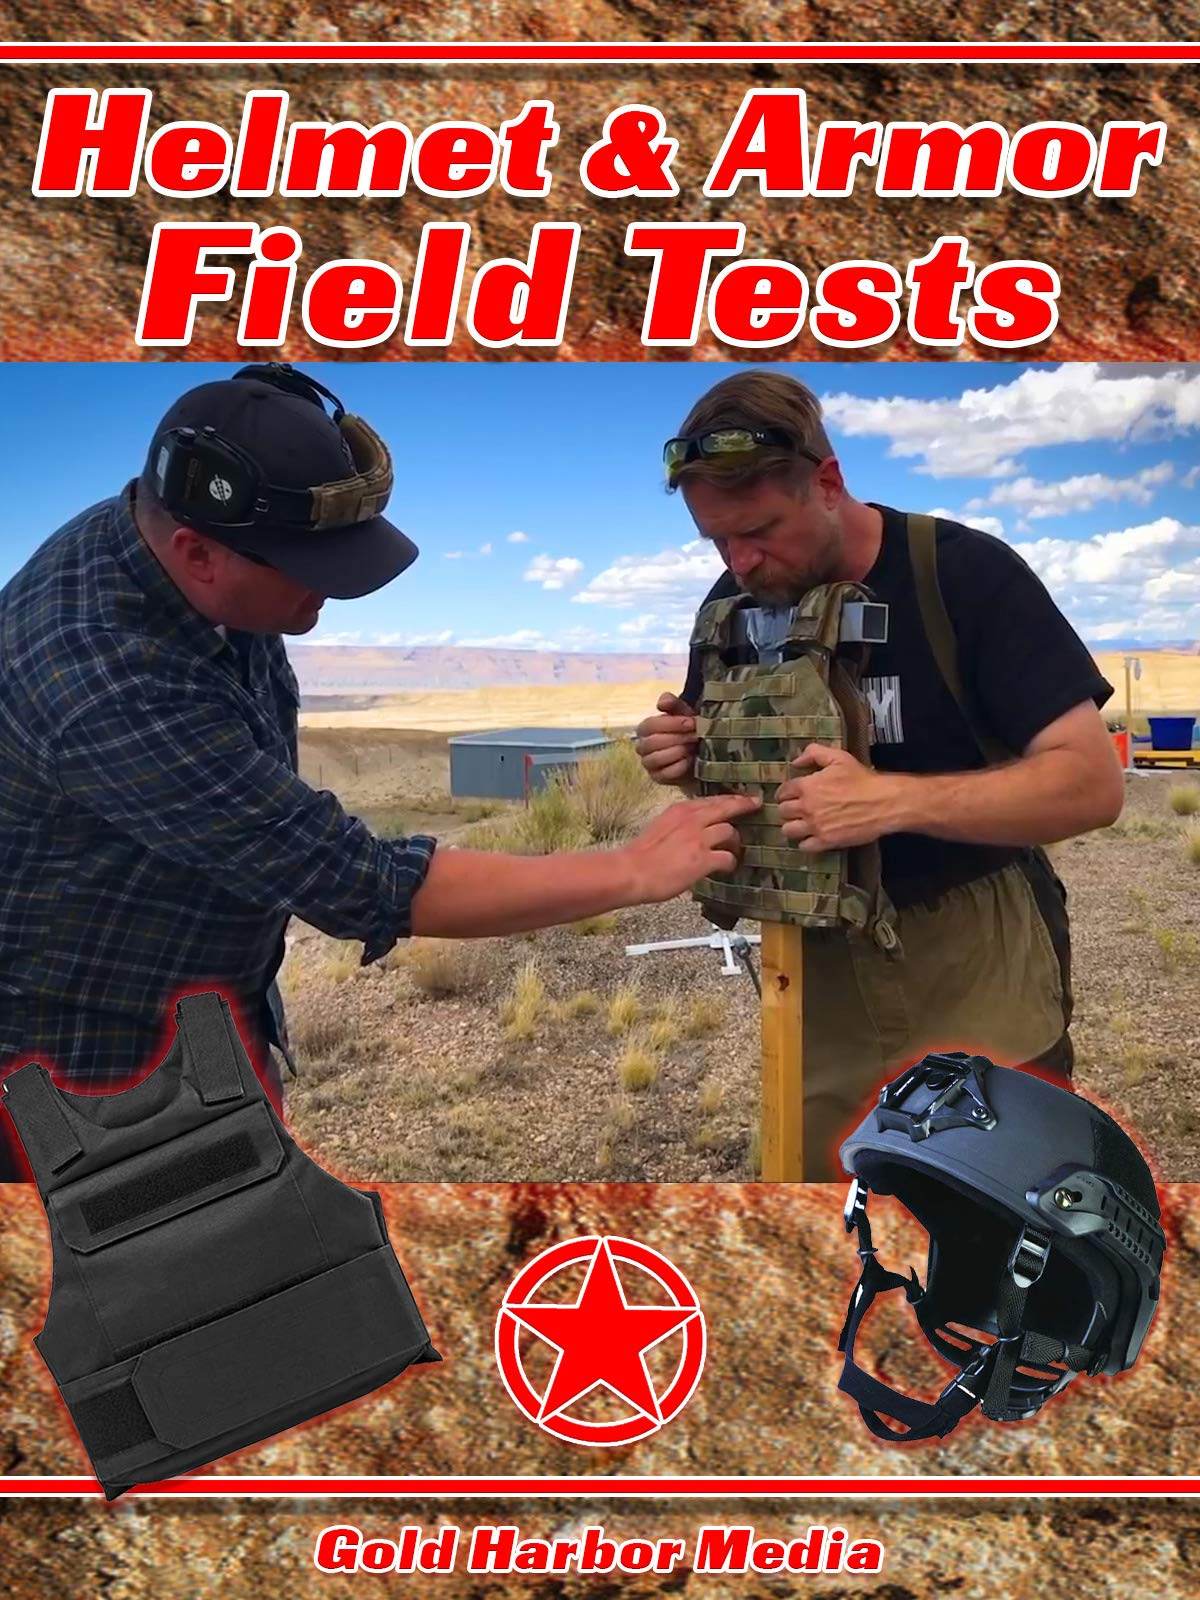 Helmet and Armor Field Tests